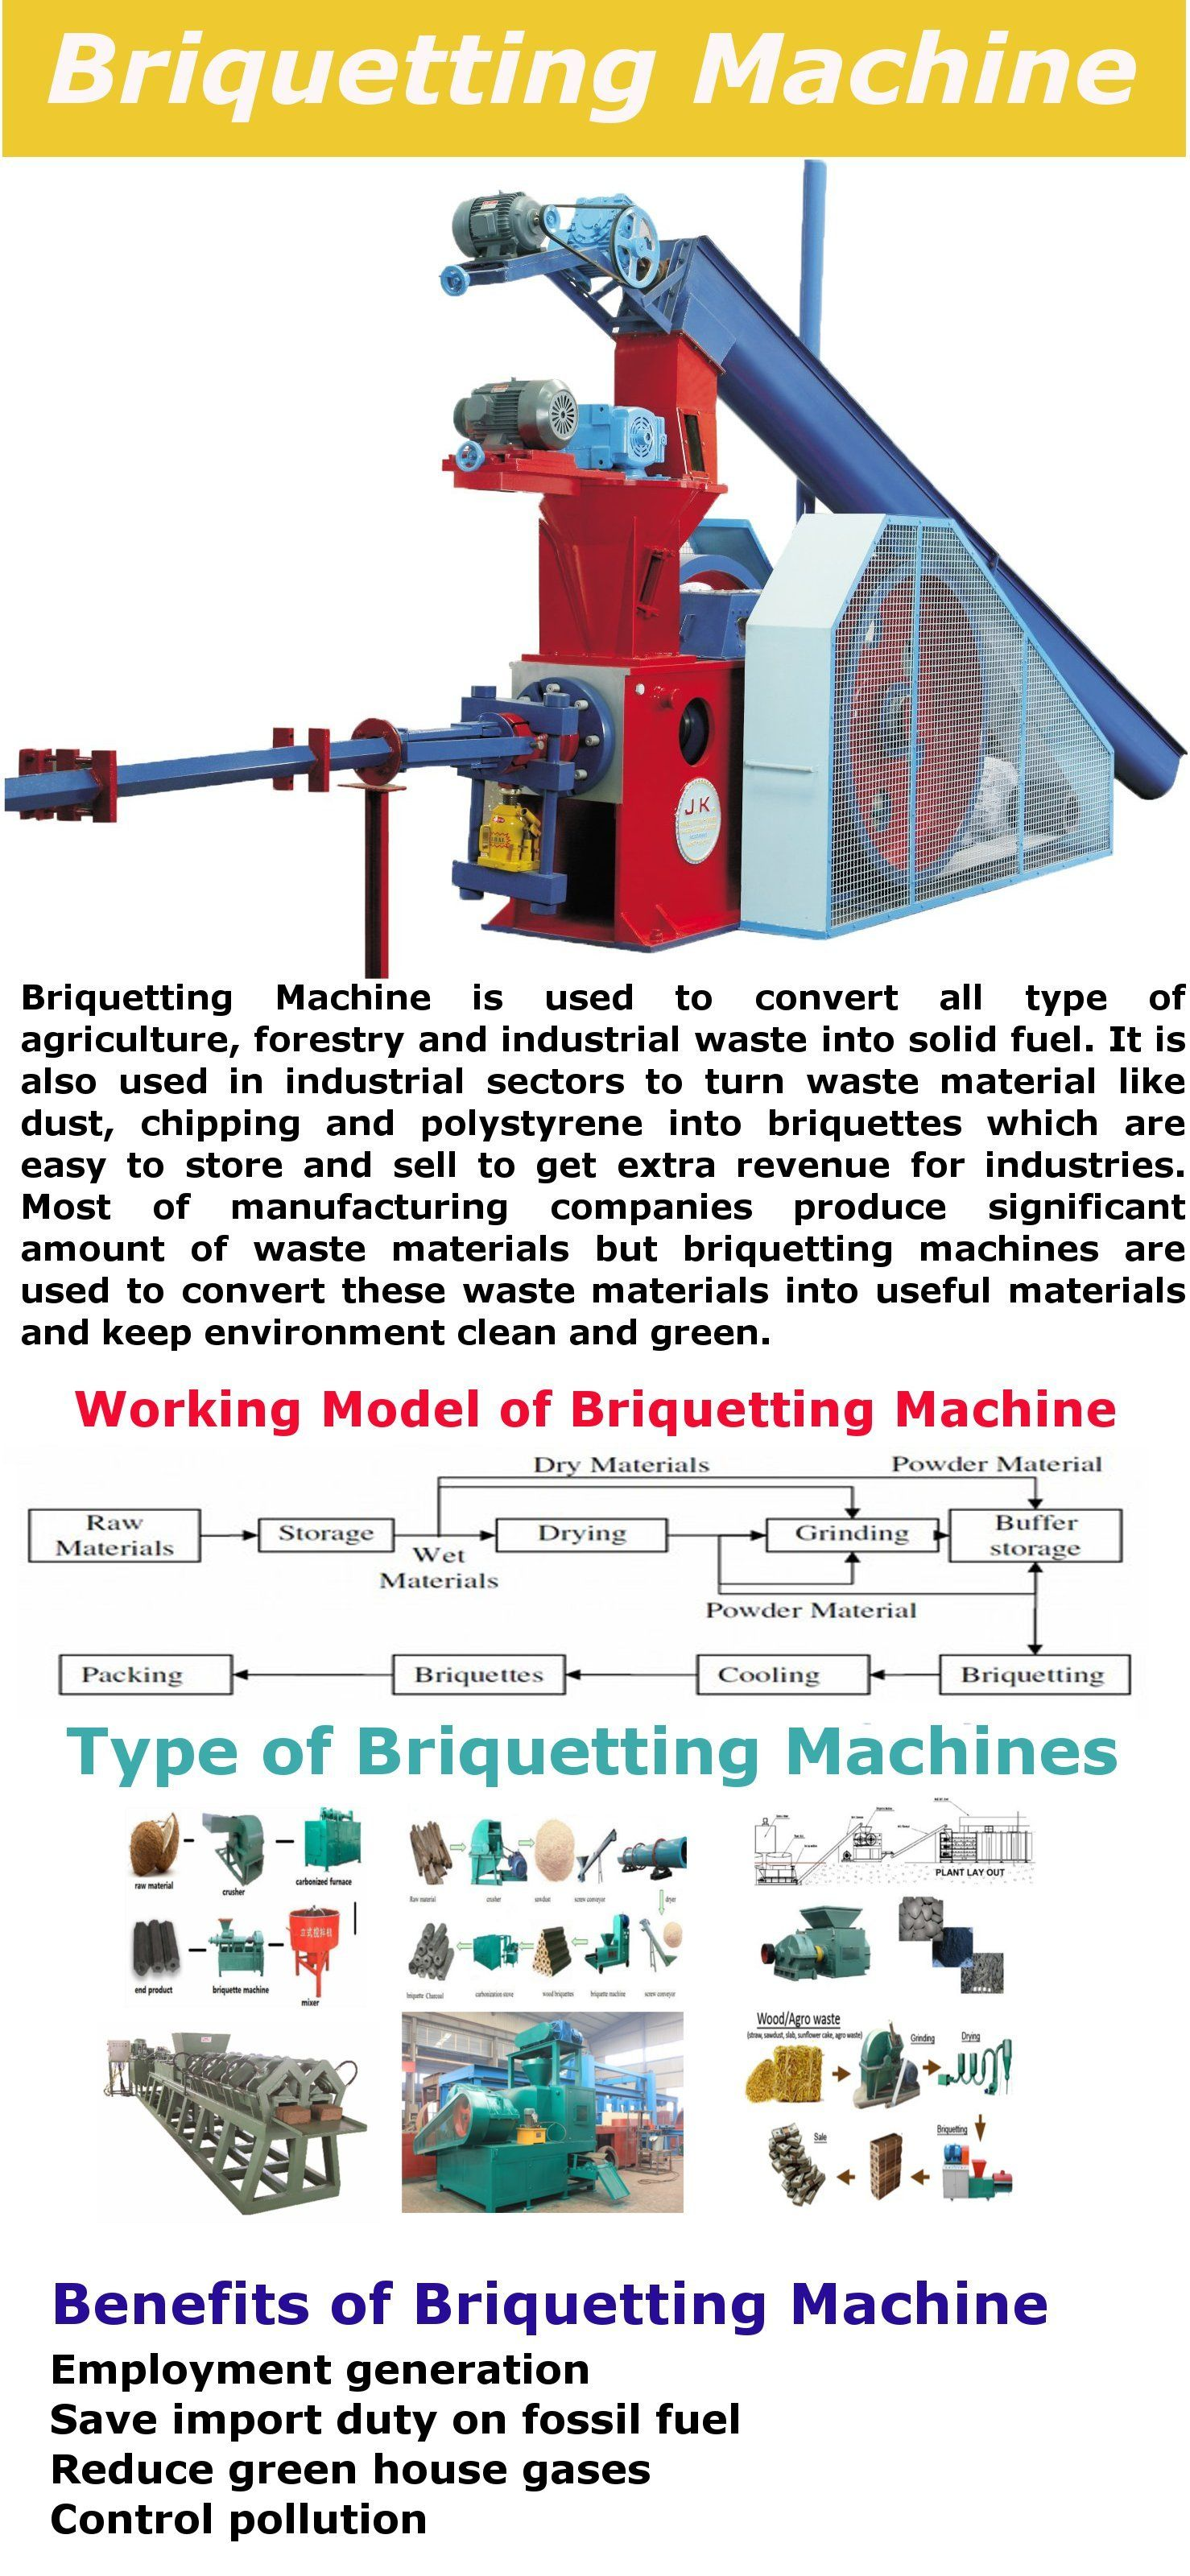 Visit here Indian briquetting machines manufacturing